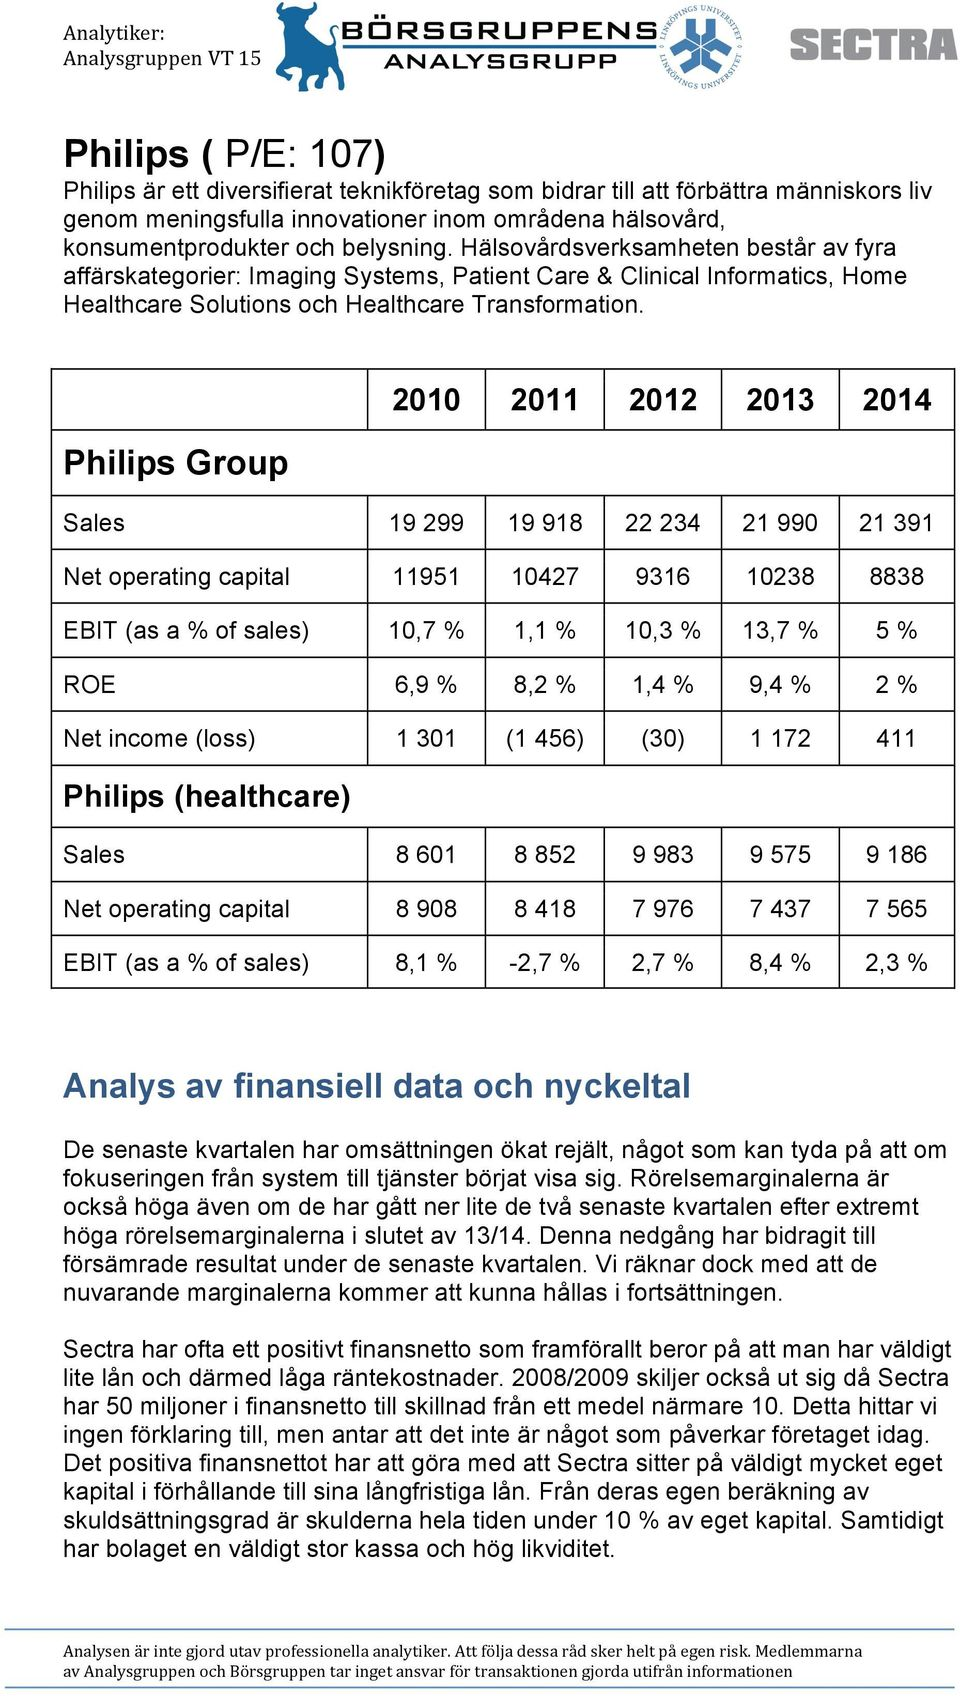 2010 2011 2012 2013 2014 Philips Group Sales 19 299 19 918 22 234 21 990 21 391 Net operating capital 11951 10427 9316 10238 8838 EBIT (as a of sales) 10,7 1,1 10,3 13,7 5 ROE 6,9 8,2 1,4 9,4 2 Net